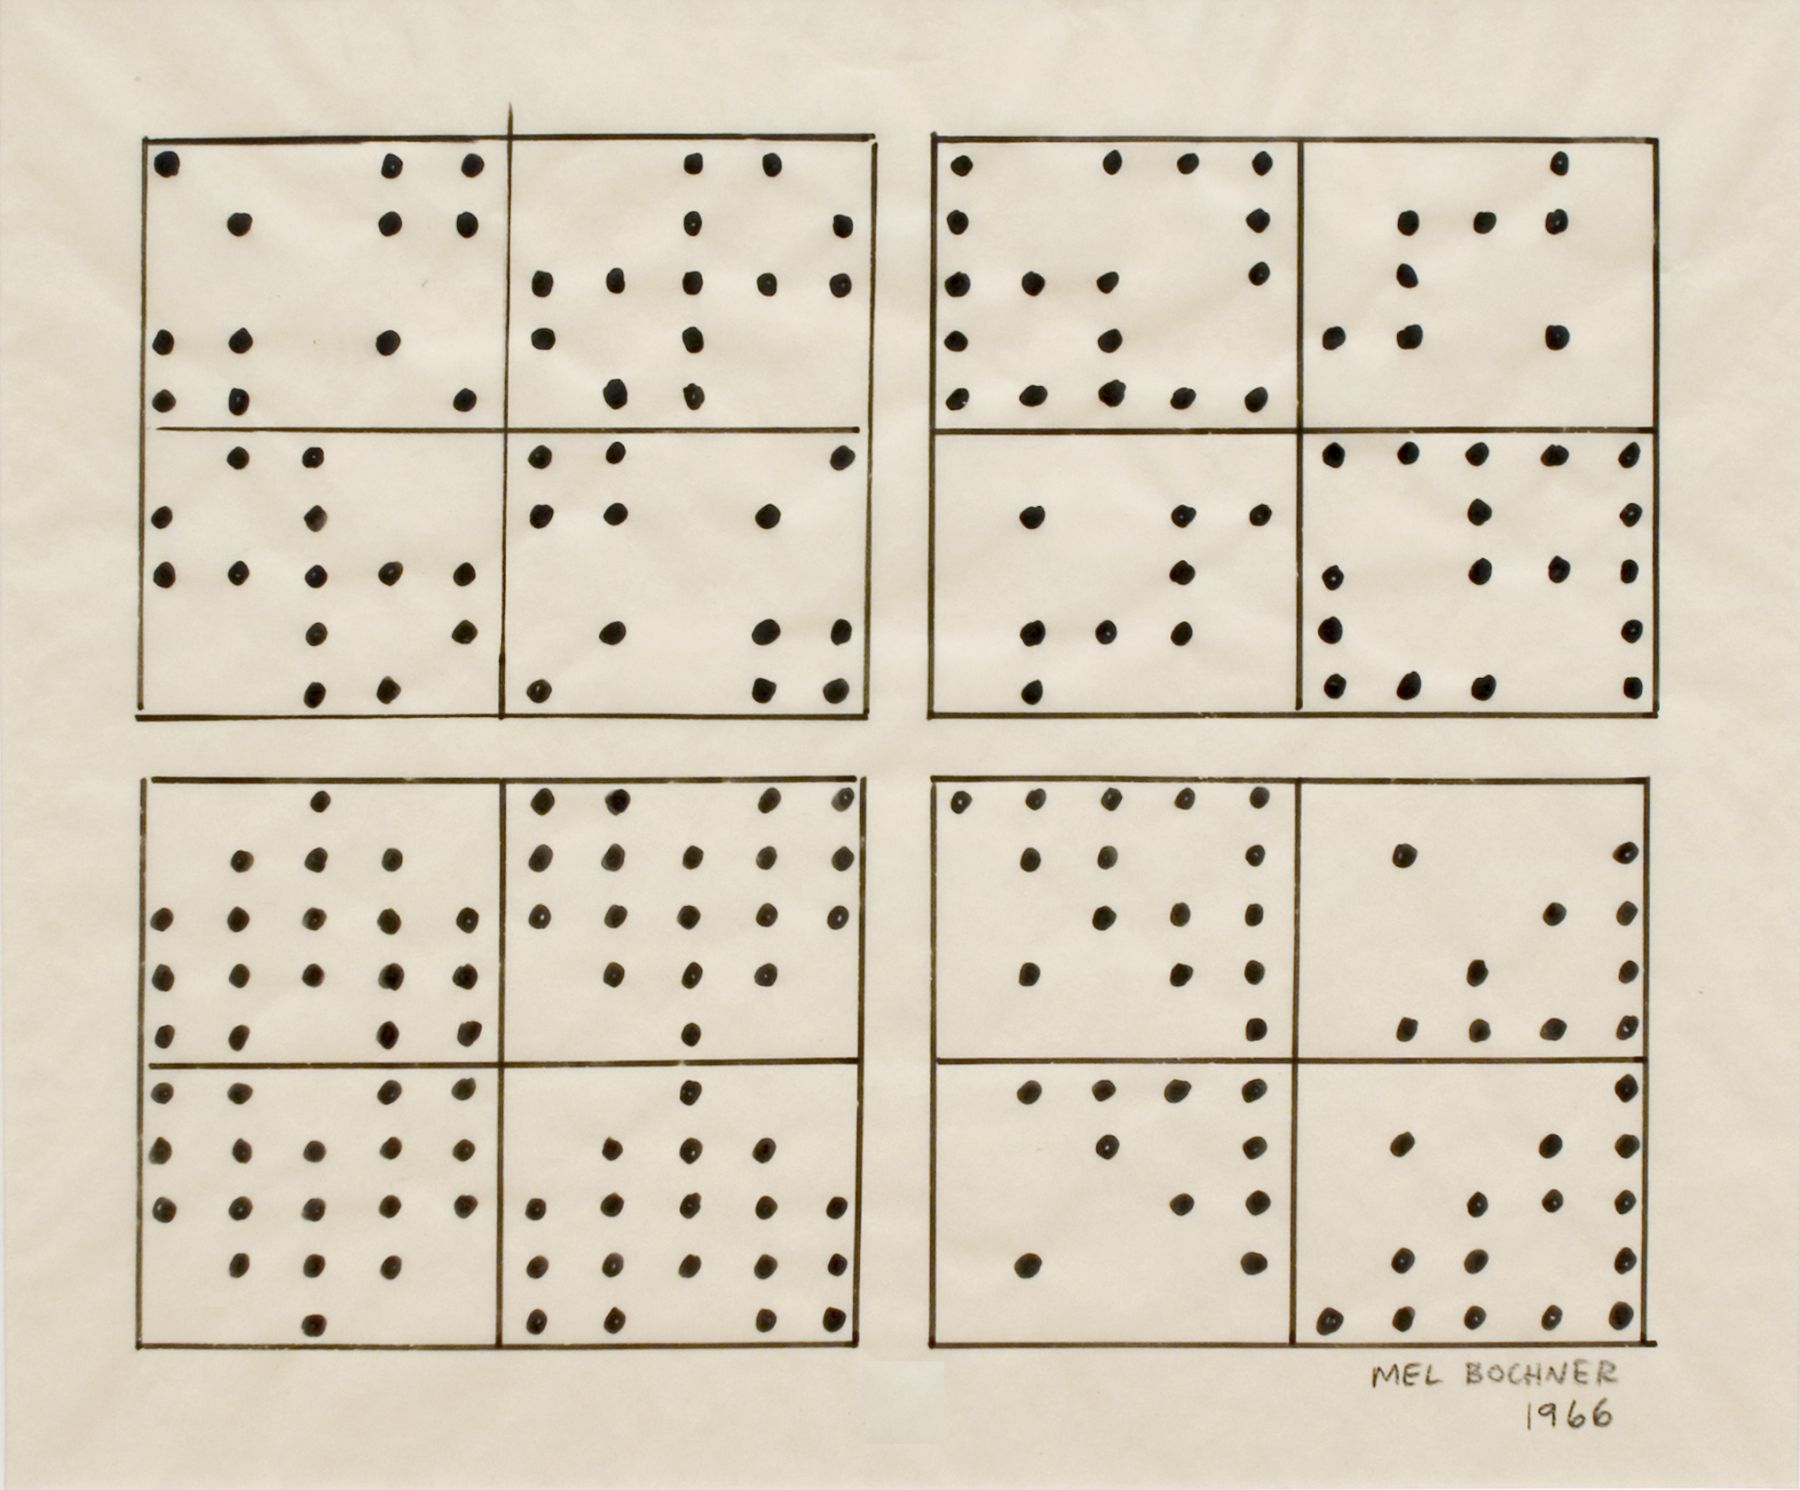 Mel Bochner,Four Sets: Rotations and Reversals, 1966. Ink on tracing paper, 12 x 15 inches.